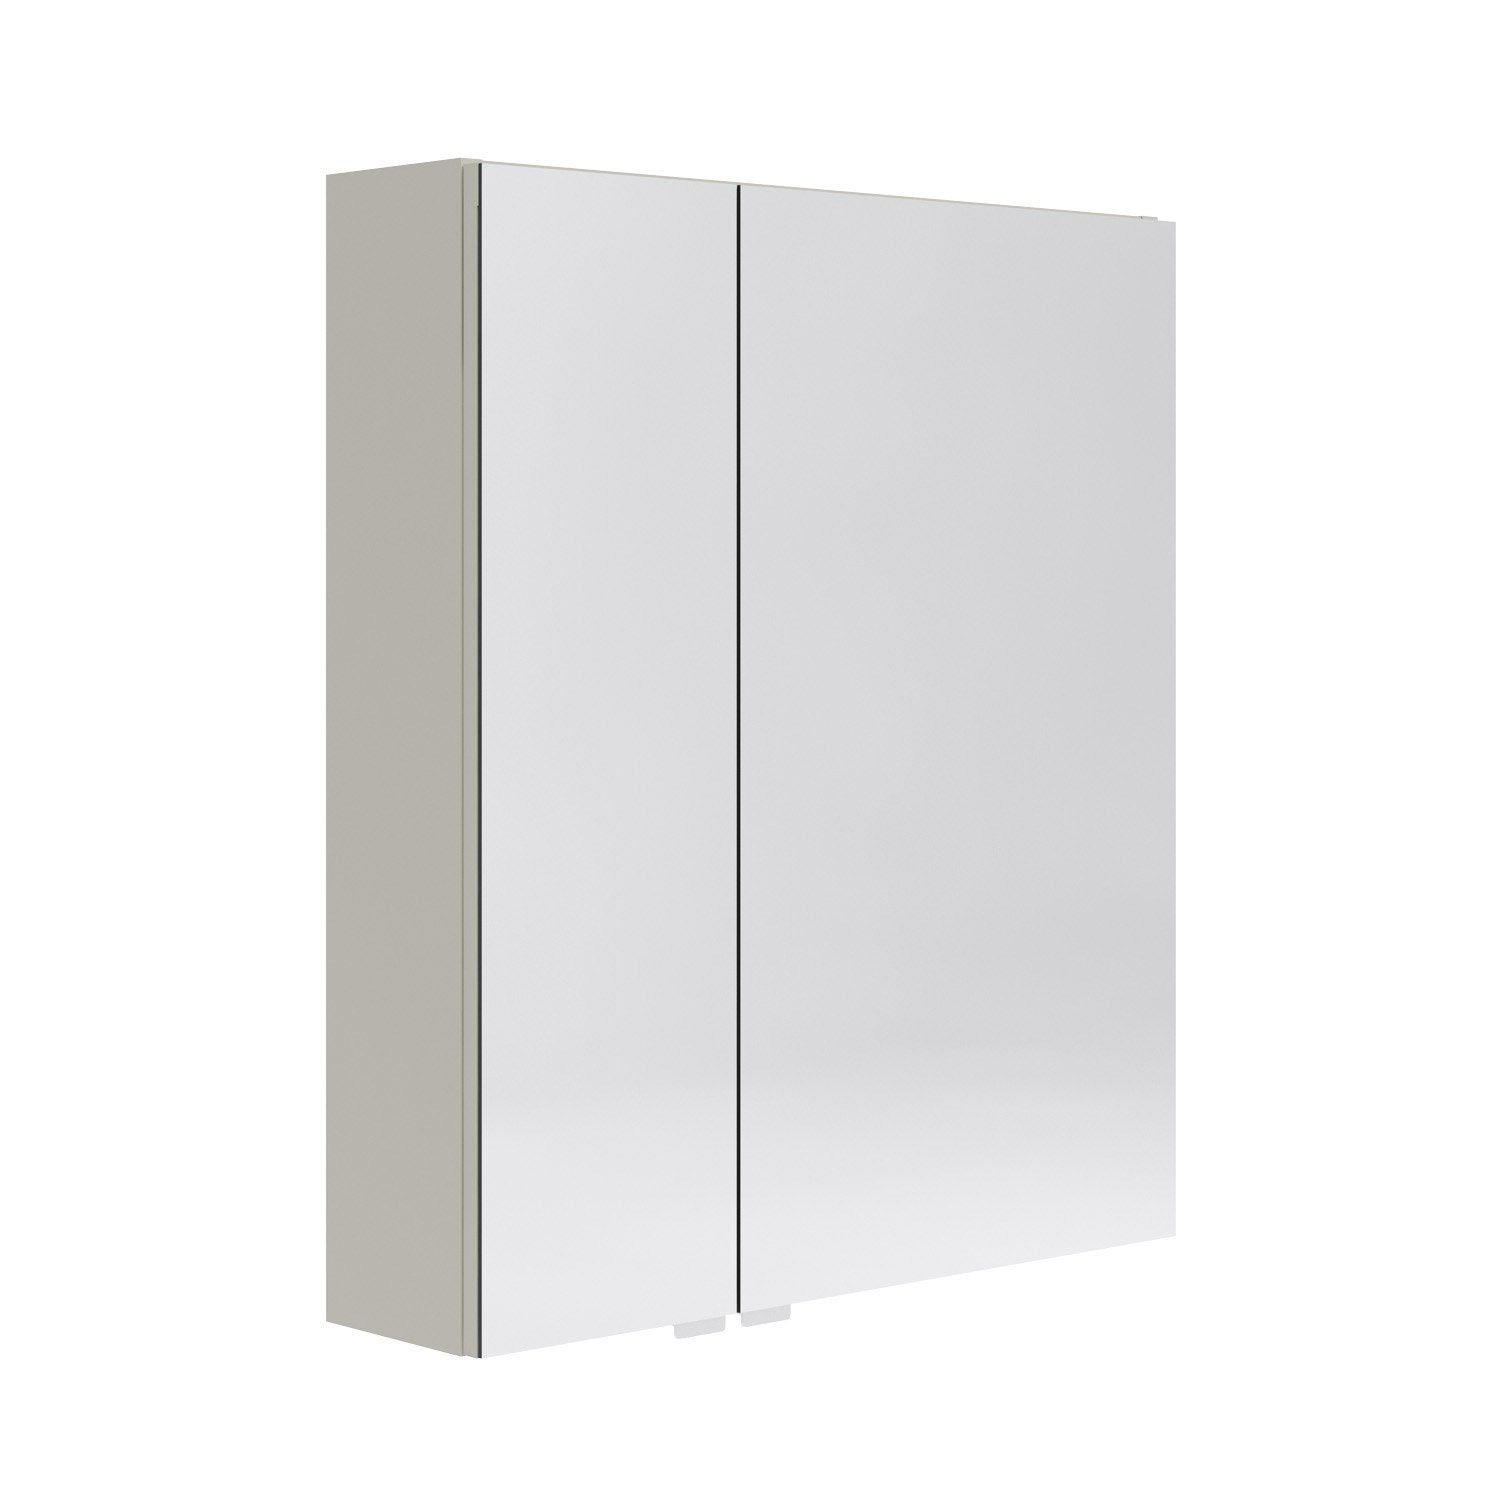 armoire de toilette l 60 cm beige opale leroy merlin. Black Bedroom Furniture Sets. Home Design Ideas